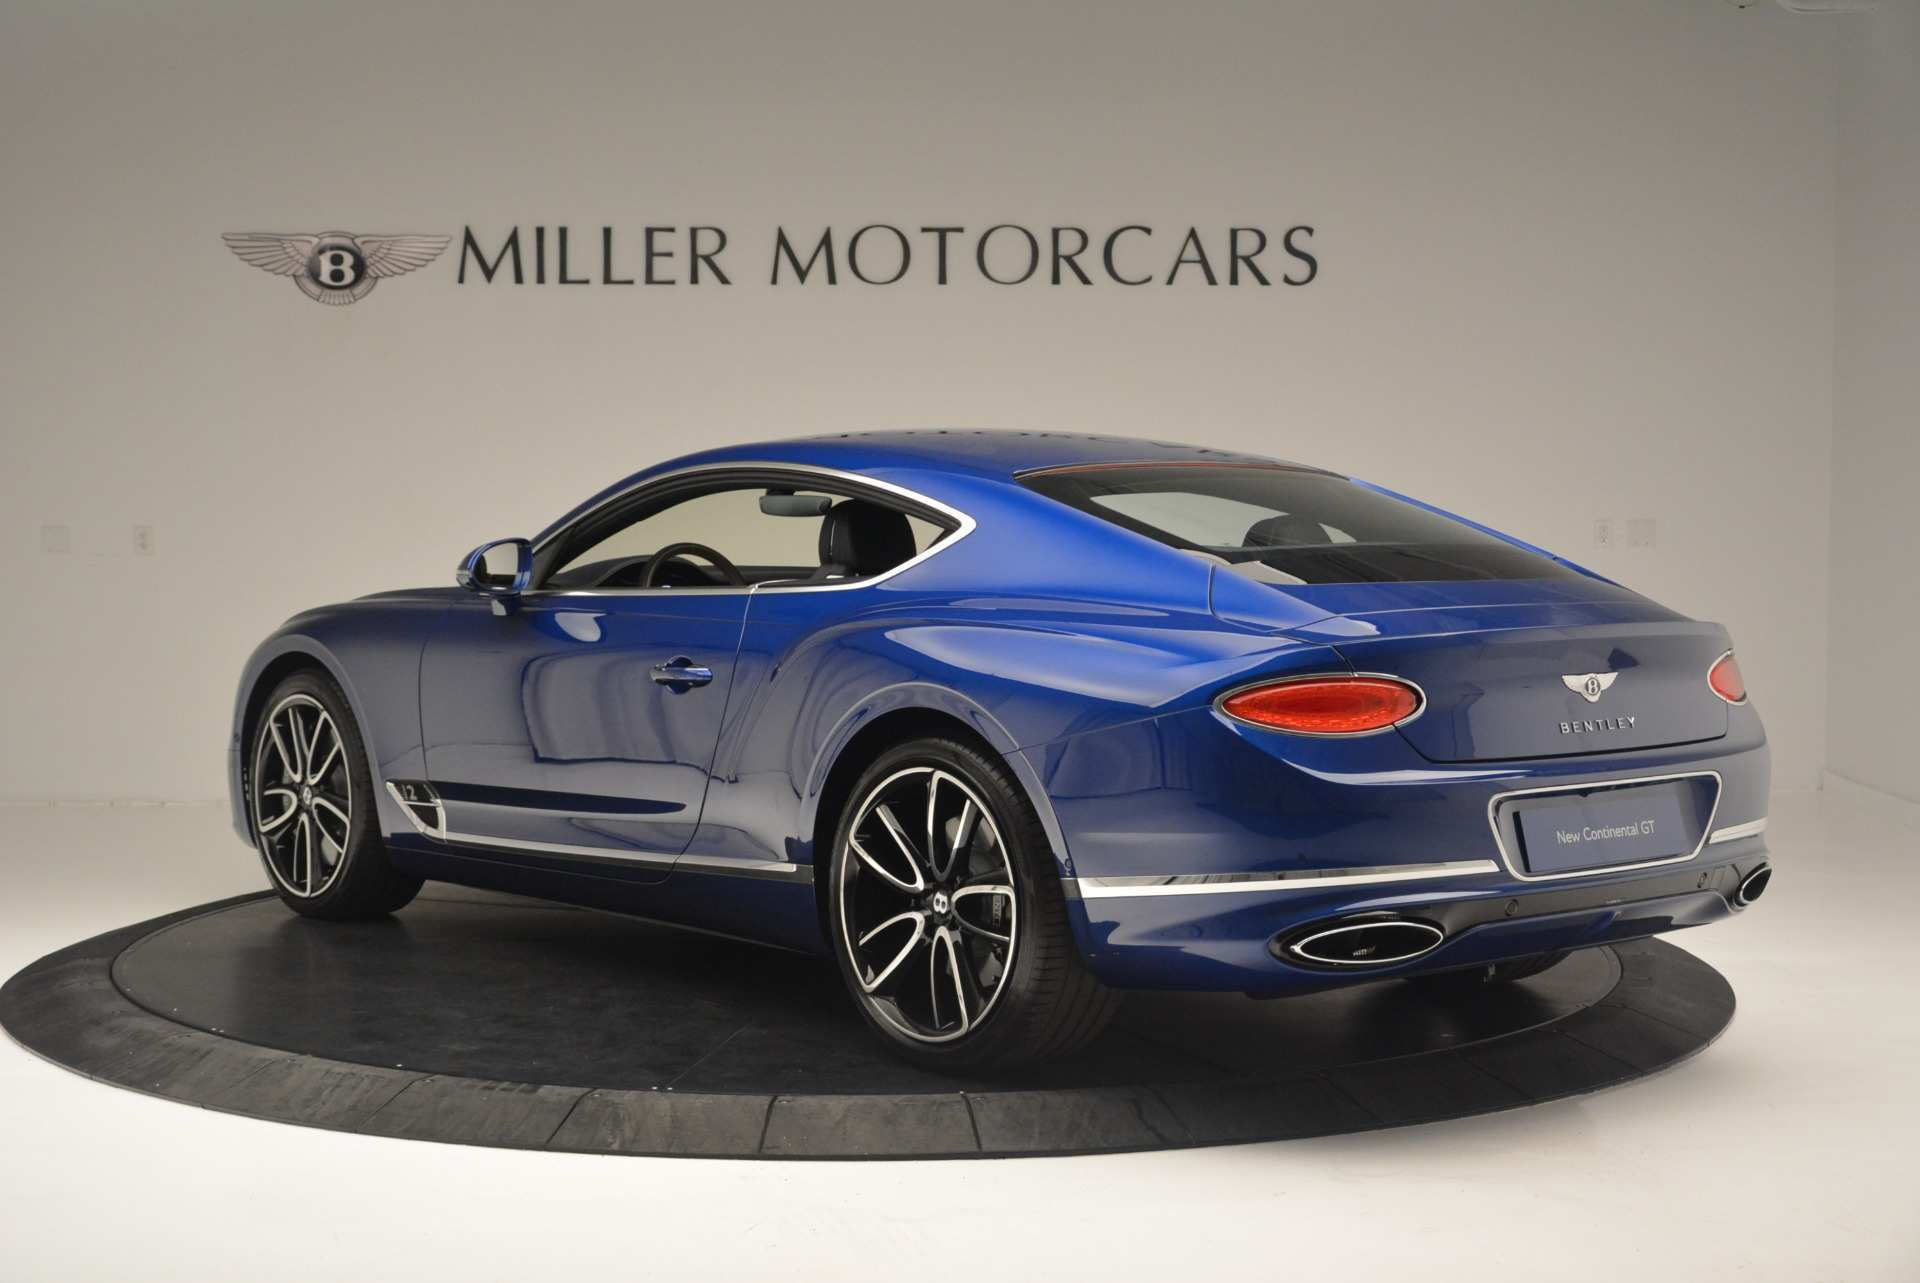 21 Great 2020 Bentley Continental GT Concept for 2020 Bentley Continental GT